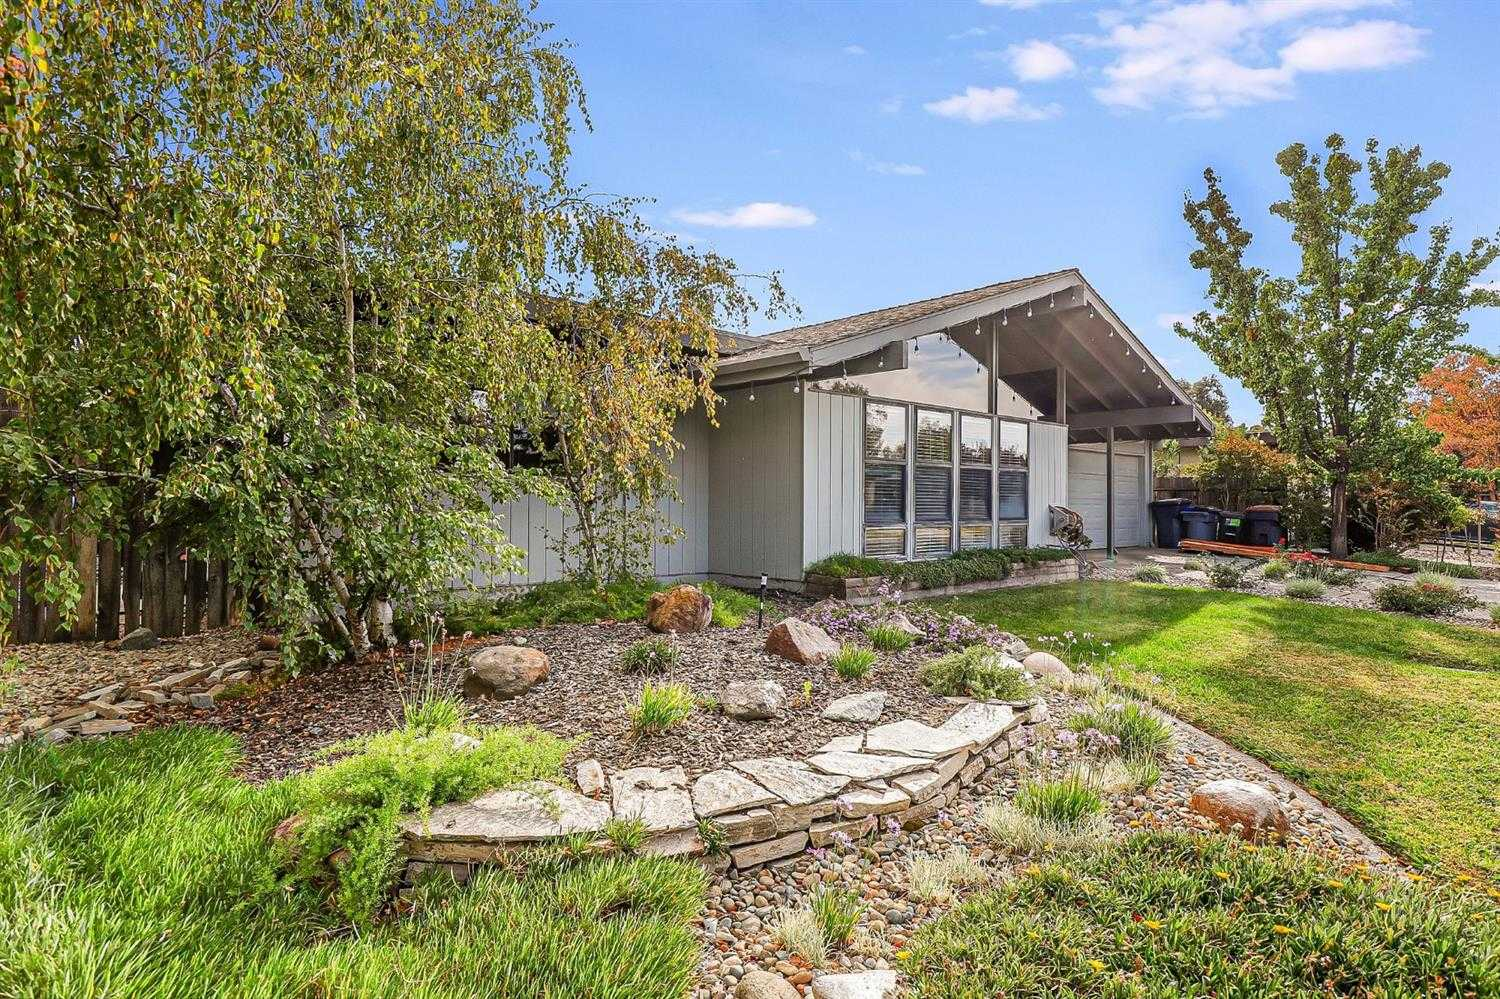 $795,000 - 4Br/2Ba -  for Sale in Streng Covell Park 05, Davis